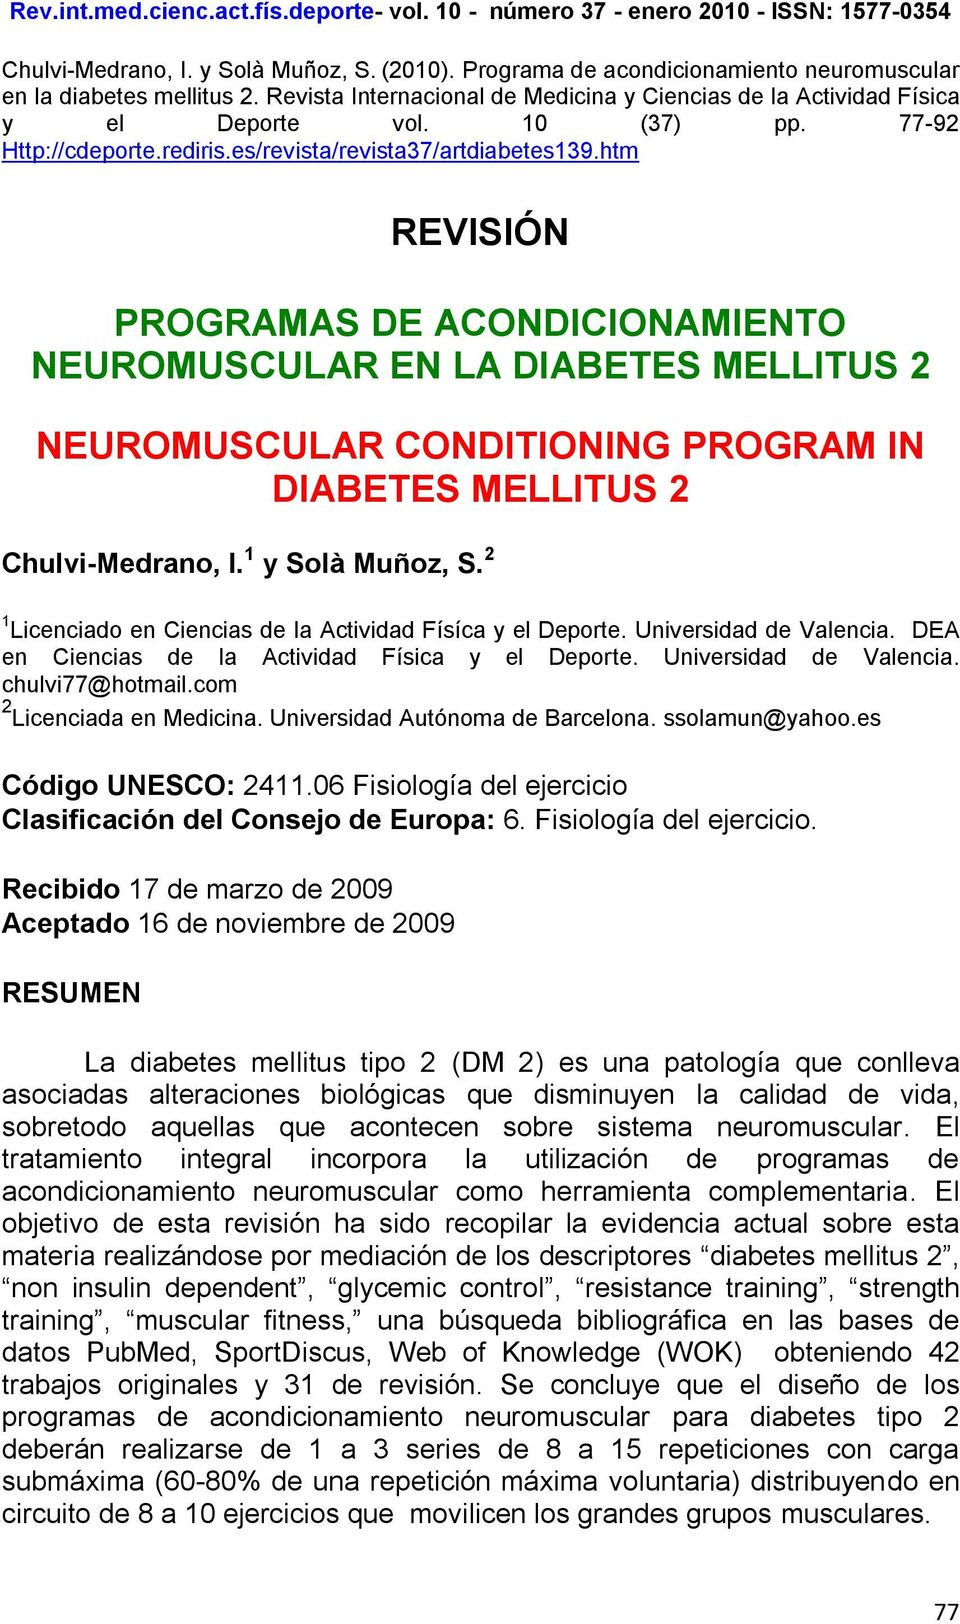 htm REVISIÓN PROGRAMAS DE ACONDICIONAMIENTO NEUROMUSCULAR EN LA DIABETES MELLITUS 2 NEUROMUSCULAR CONDITIONING PROGRAM IN DIABETES MELLITUS 2 Chulvi-Medrano, I. 1 y Solà Muñoz, S.